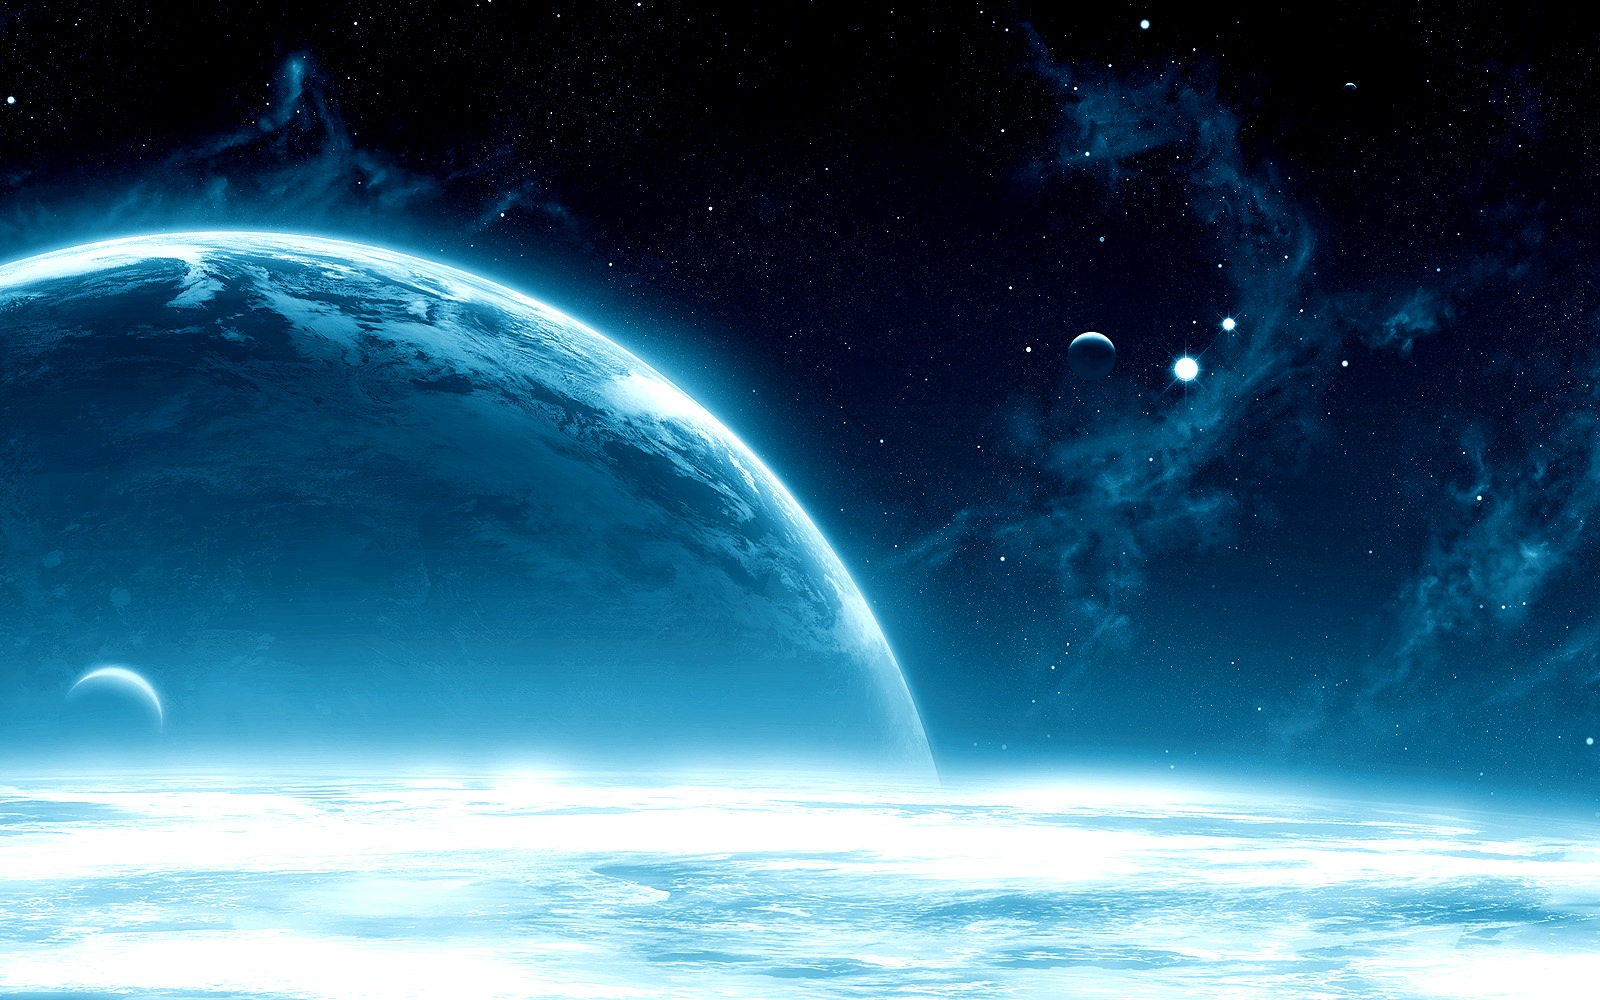 Endless Deep Space Wallpapers, Endless Deep Space Myspace Backgrounds ...